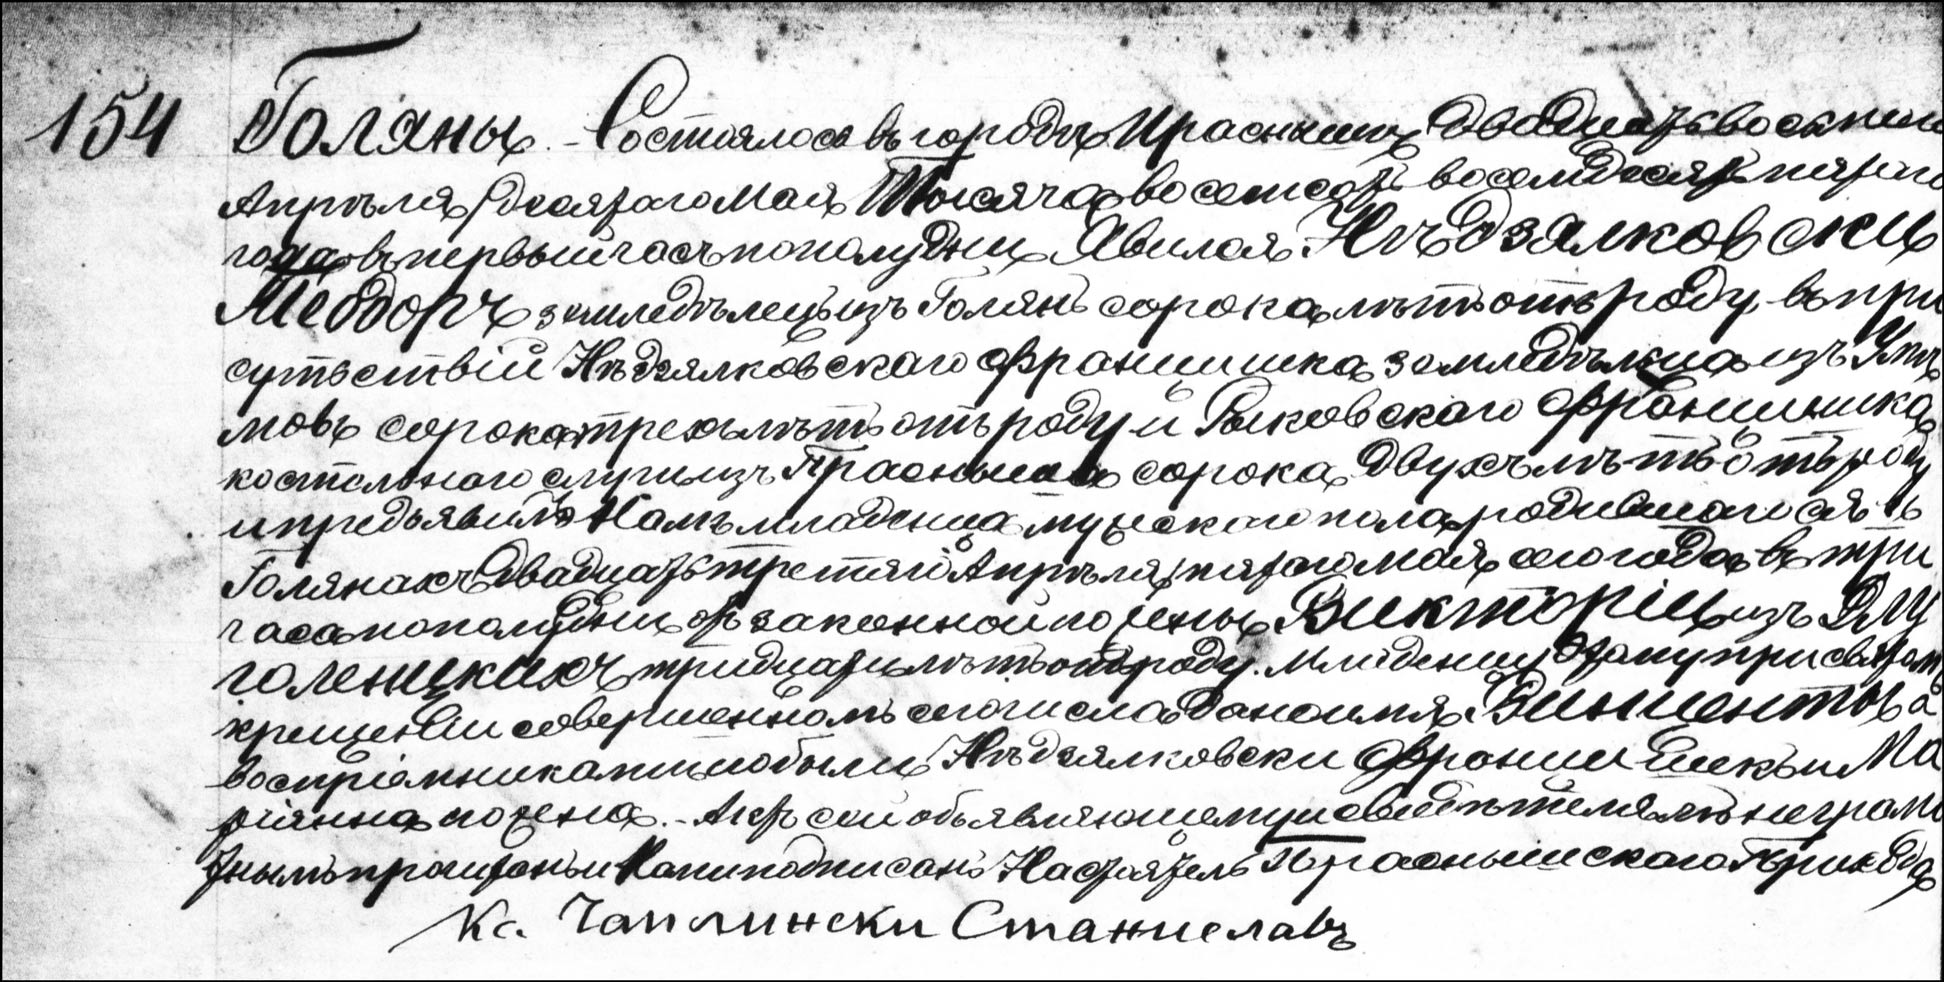 The Birth and Baptismal Record of Wincenty Niedzialkowski - 1885